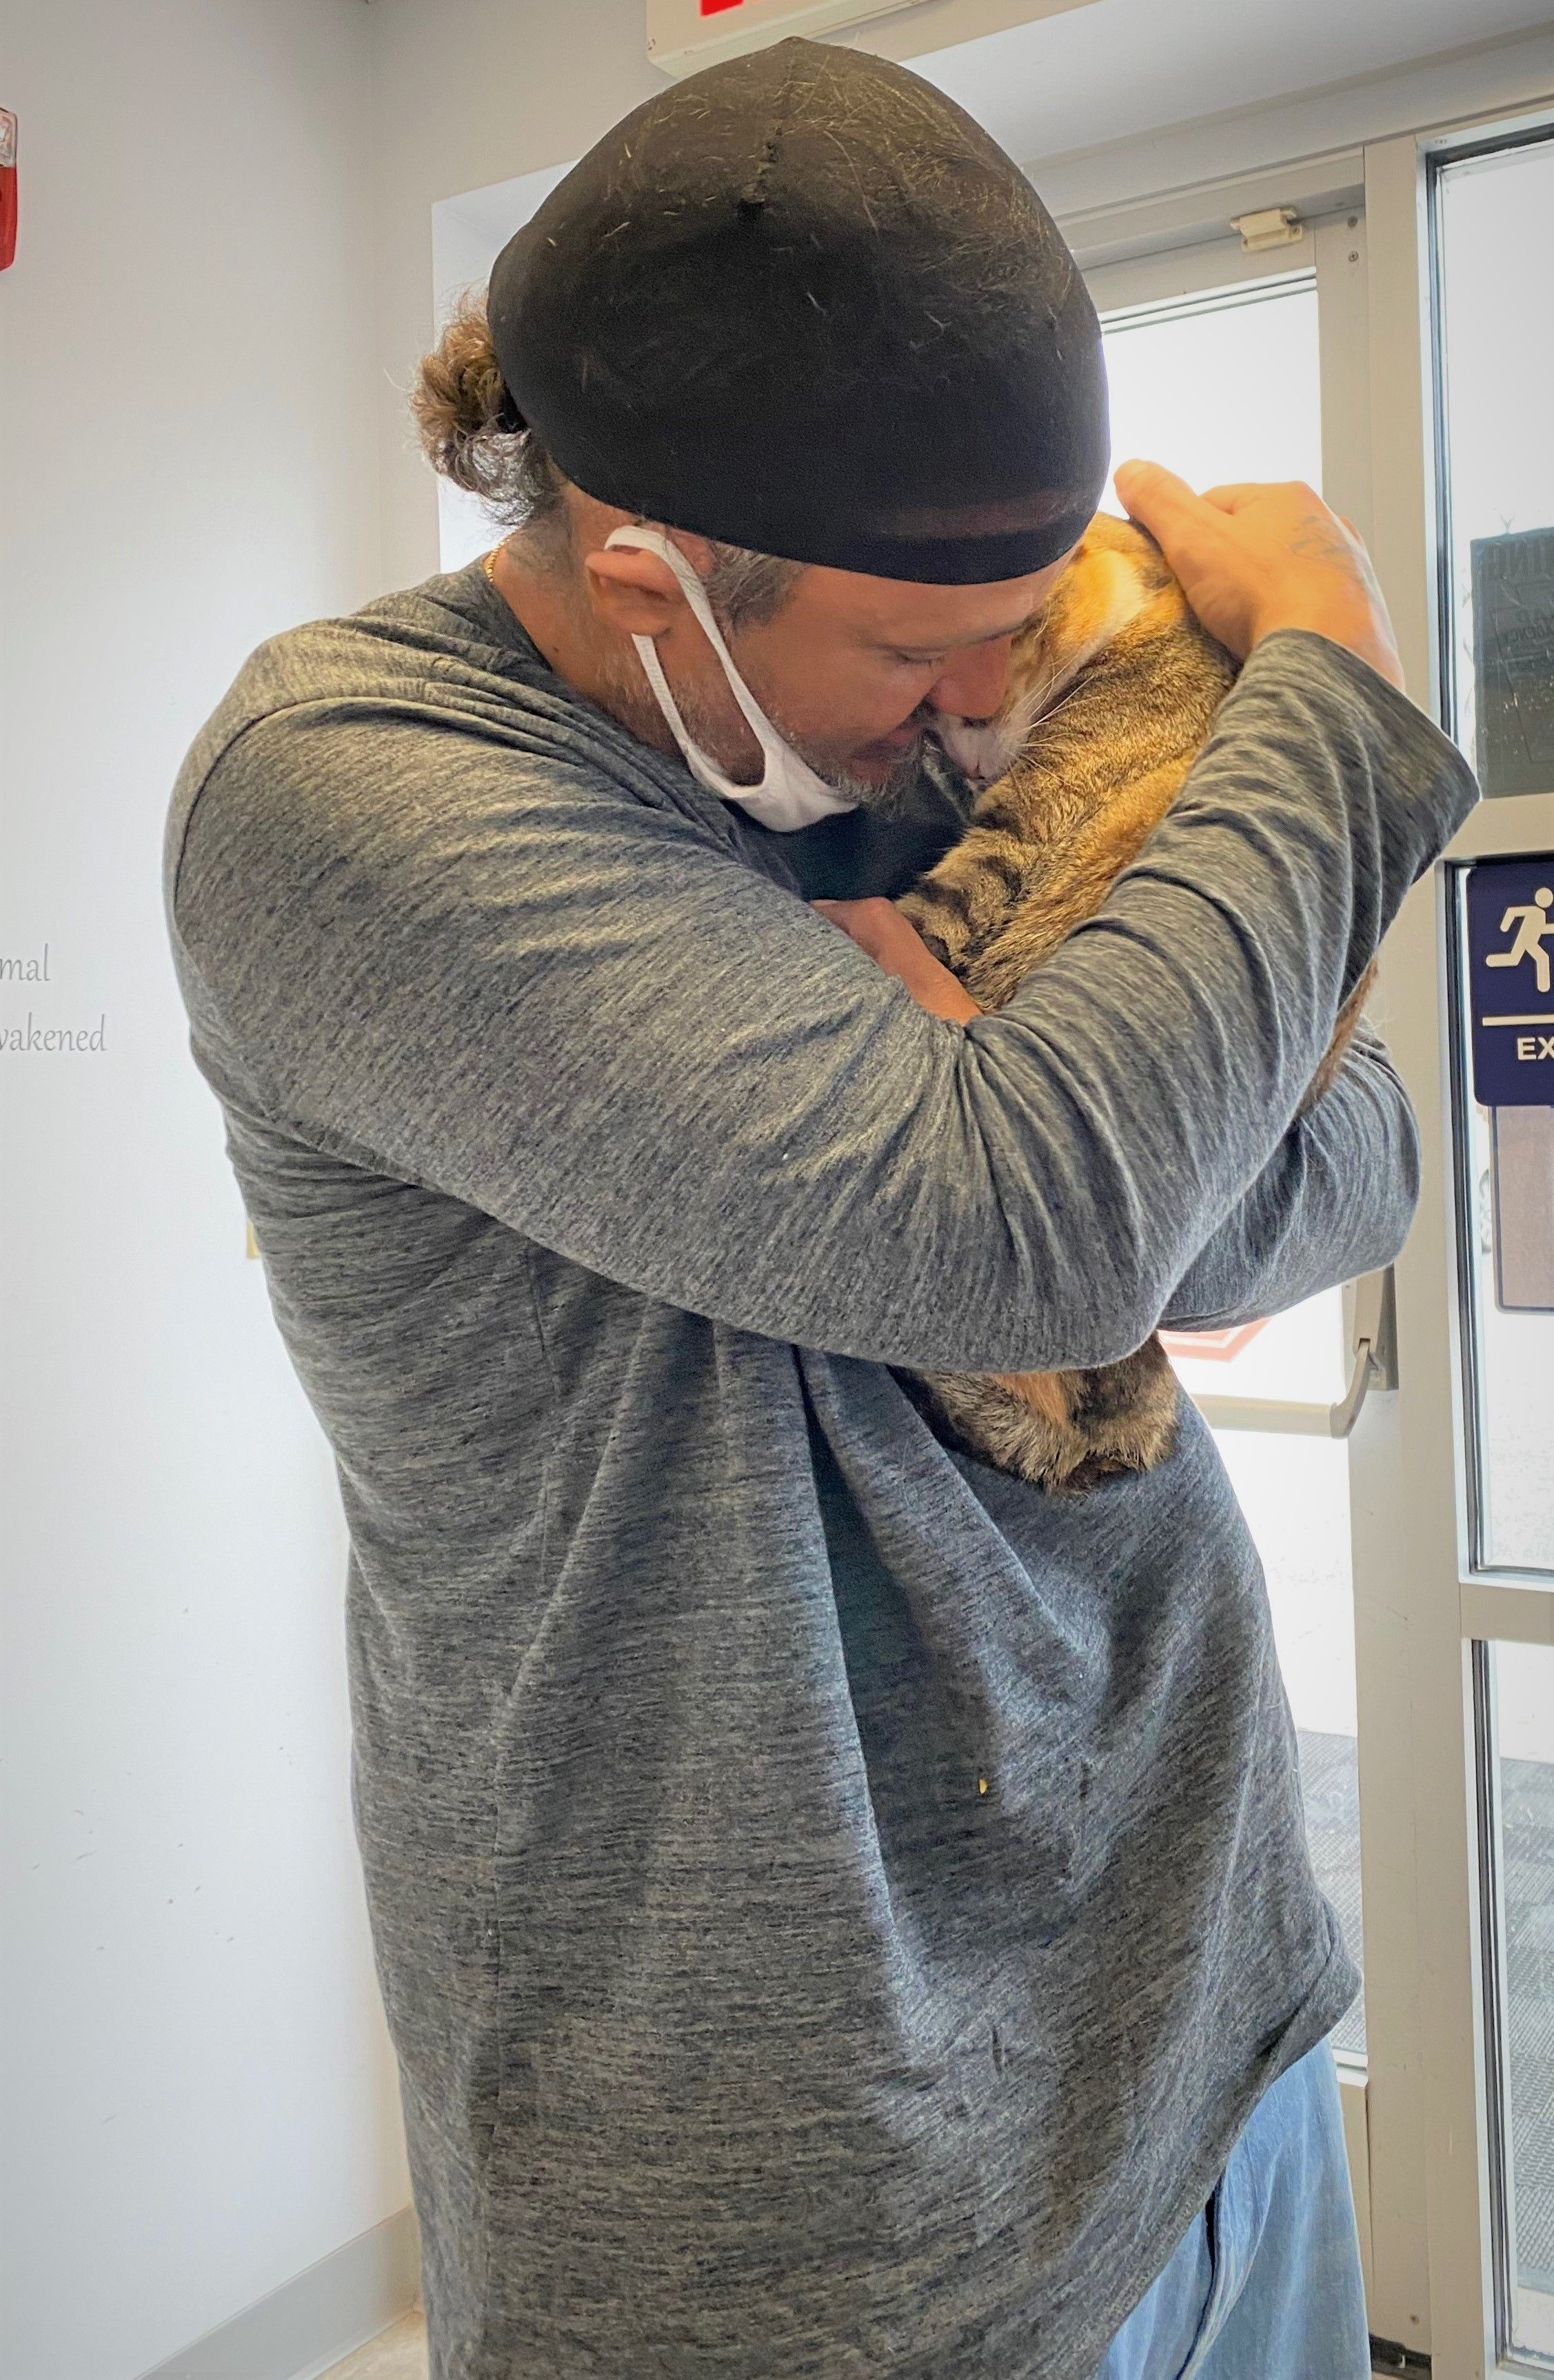 The Man Who Drove 900 Miles Overnight to See His Cat Again